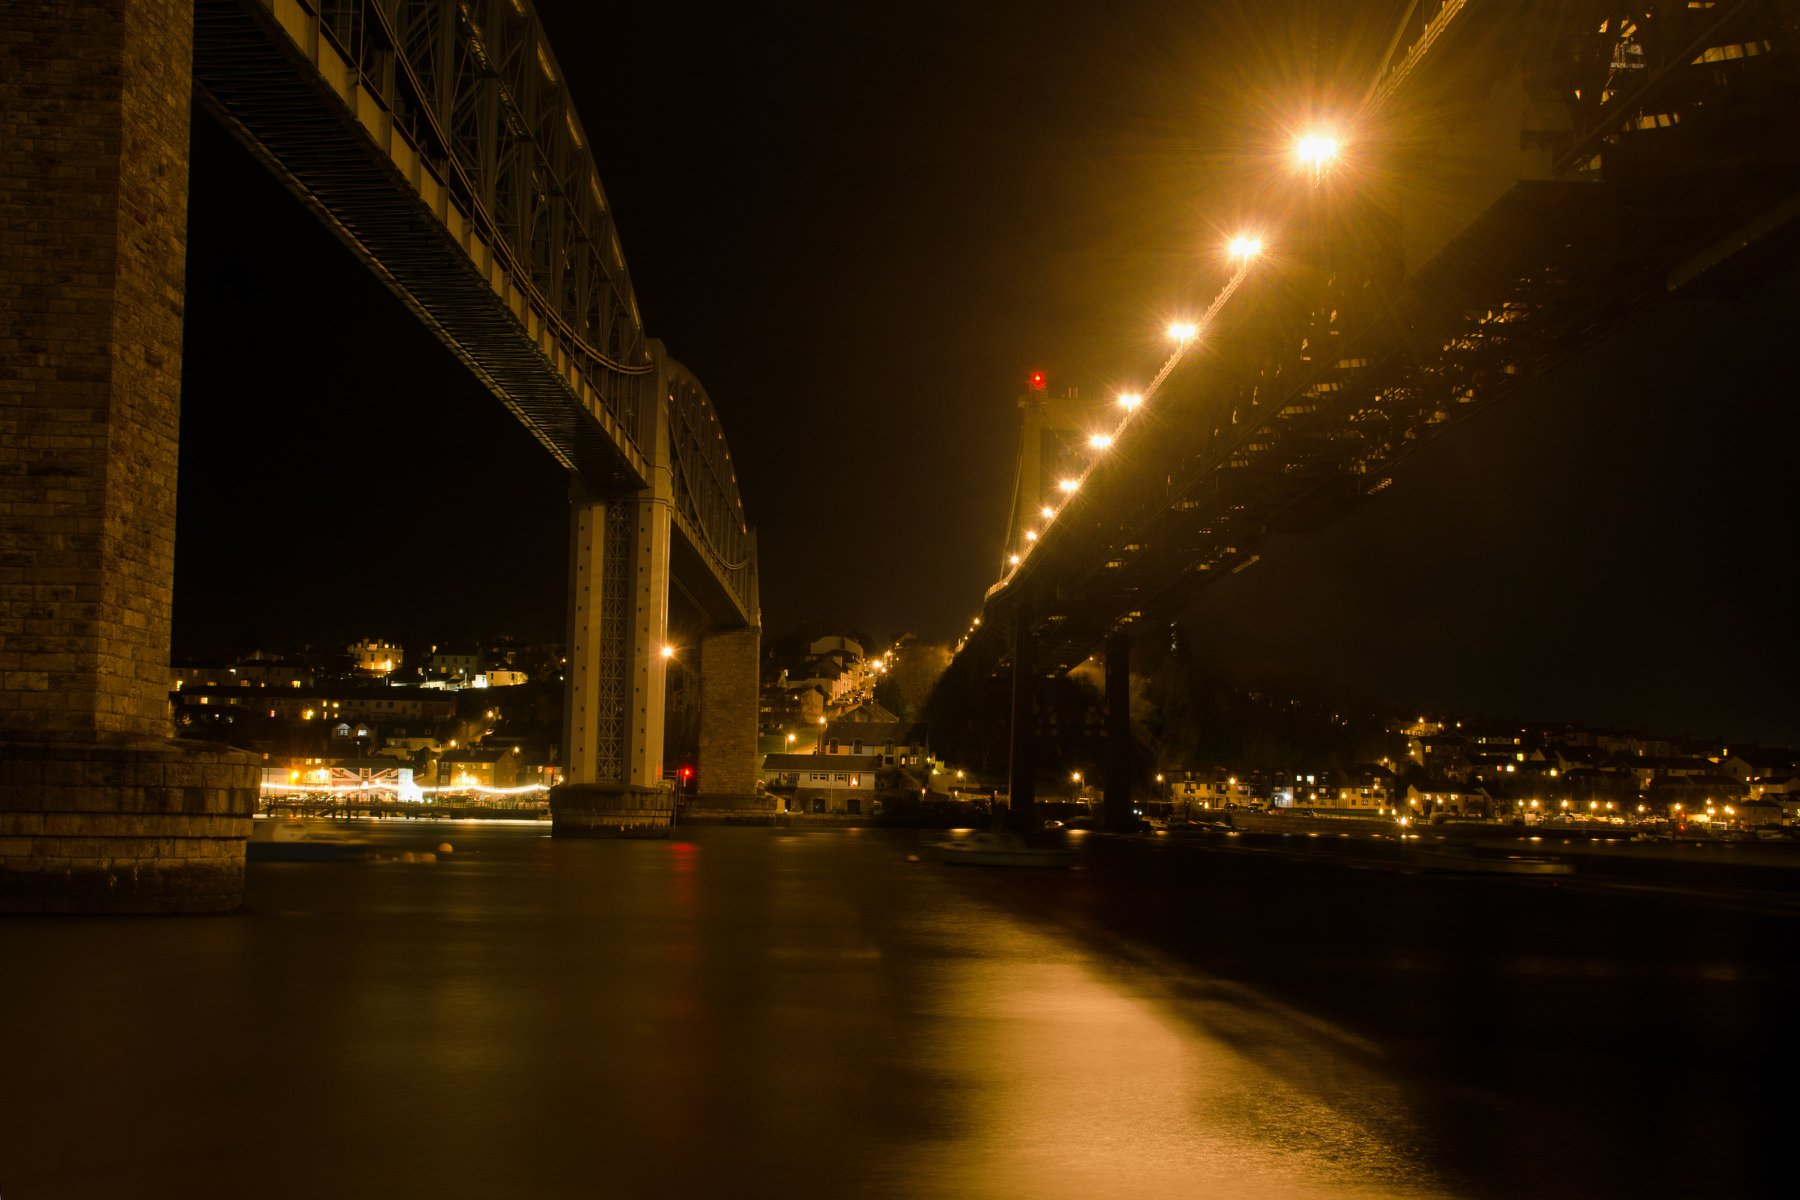 Night View of the Two Bridges From St Budeaux